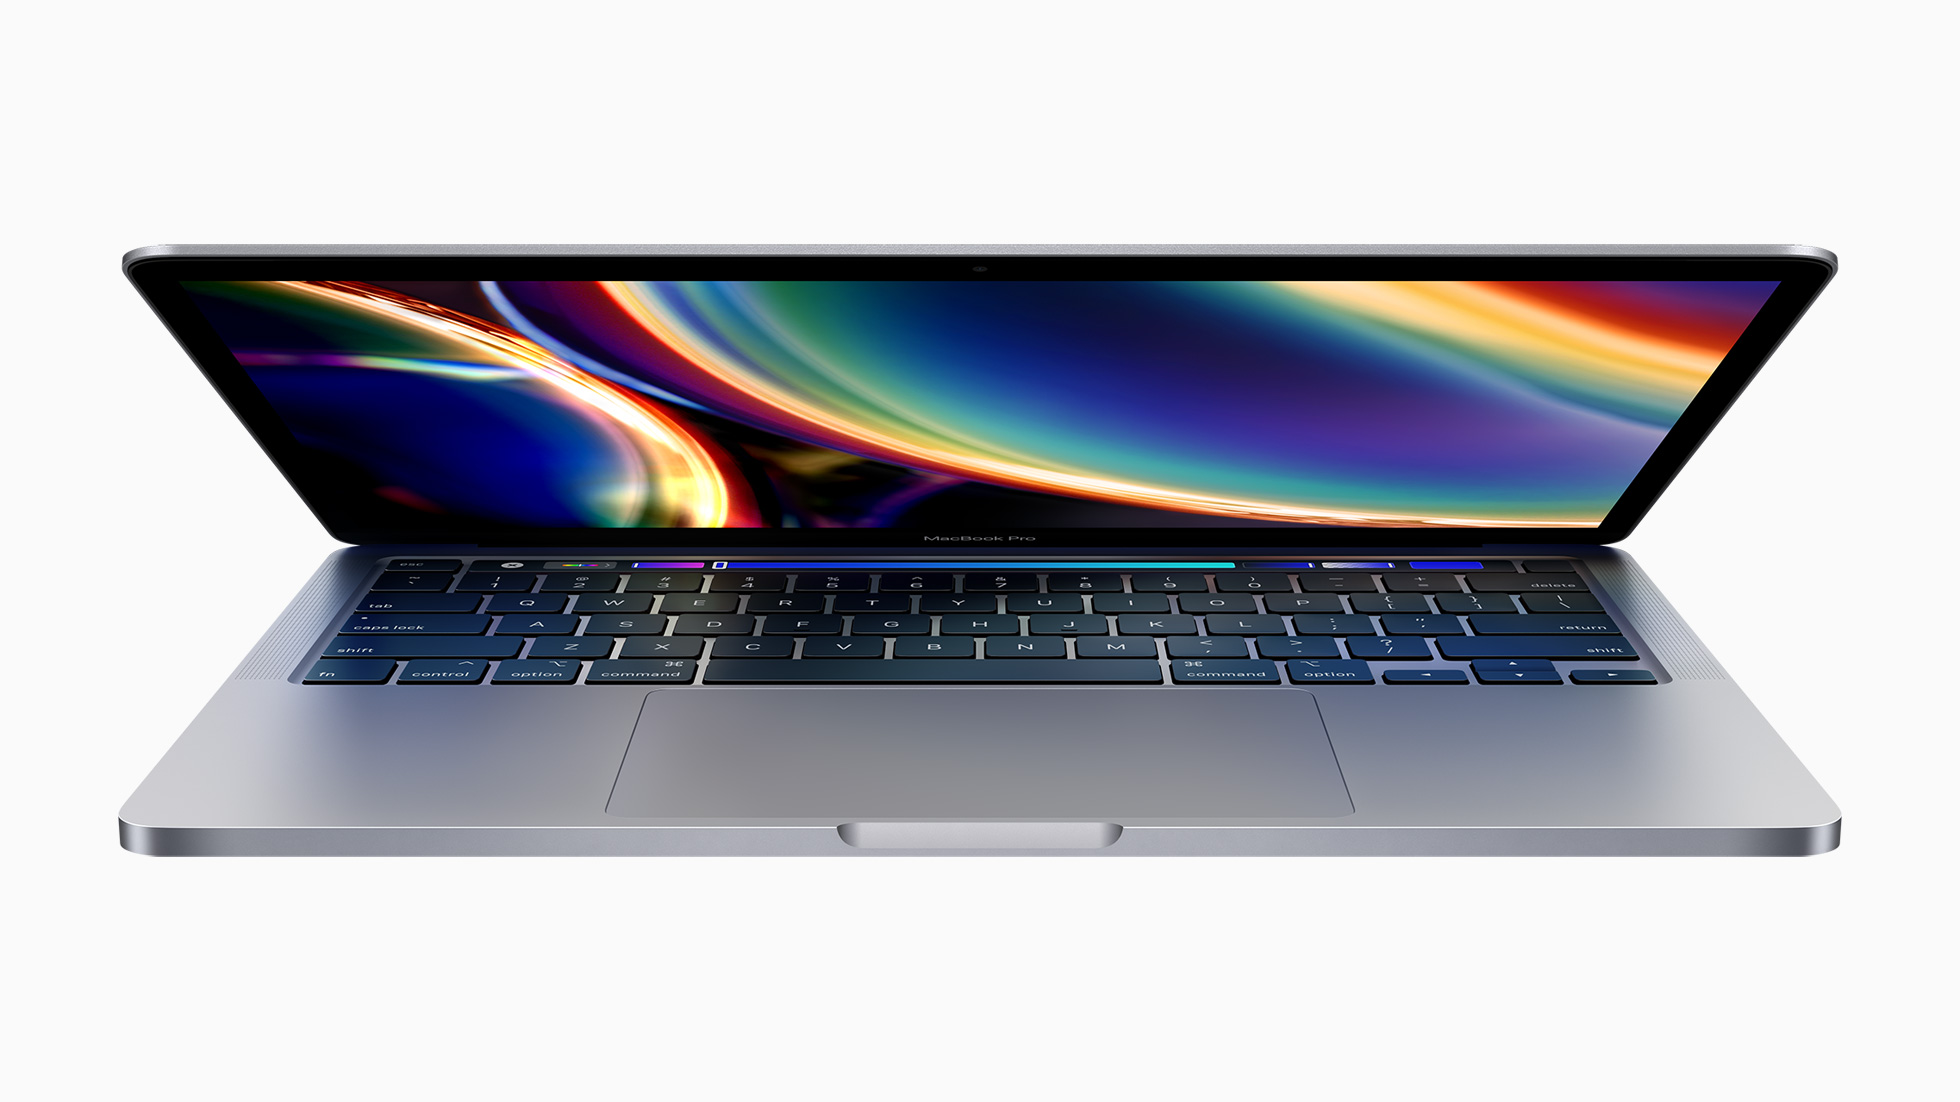 Apple_macbookpro-13-inch_screen_05042020_big.jpg.large_2x.jpg (1960×1102)